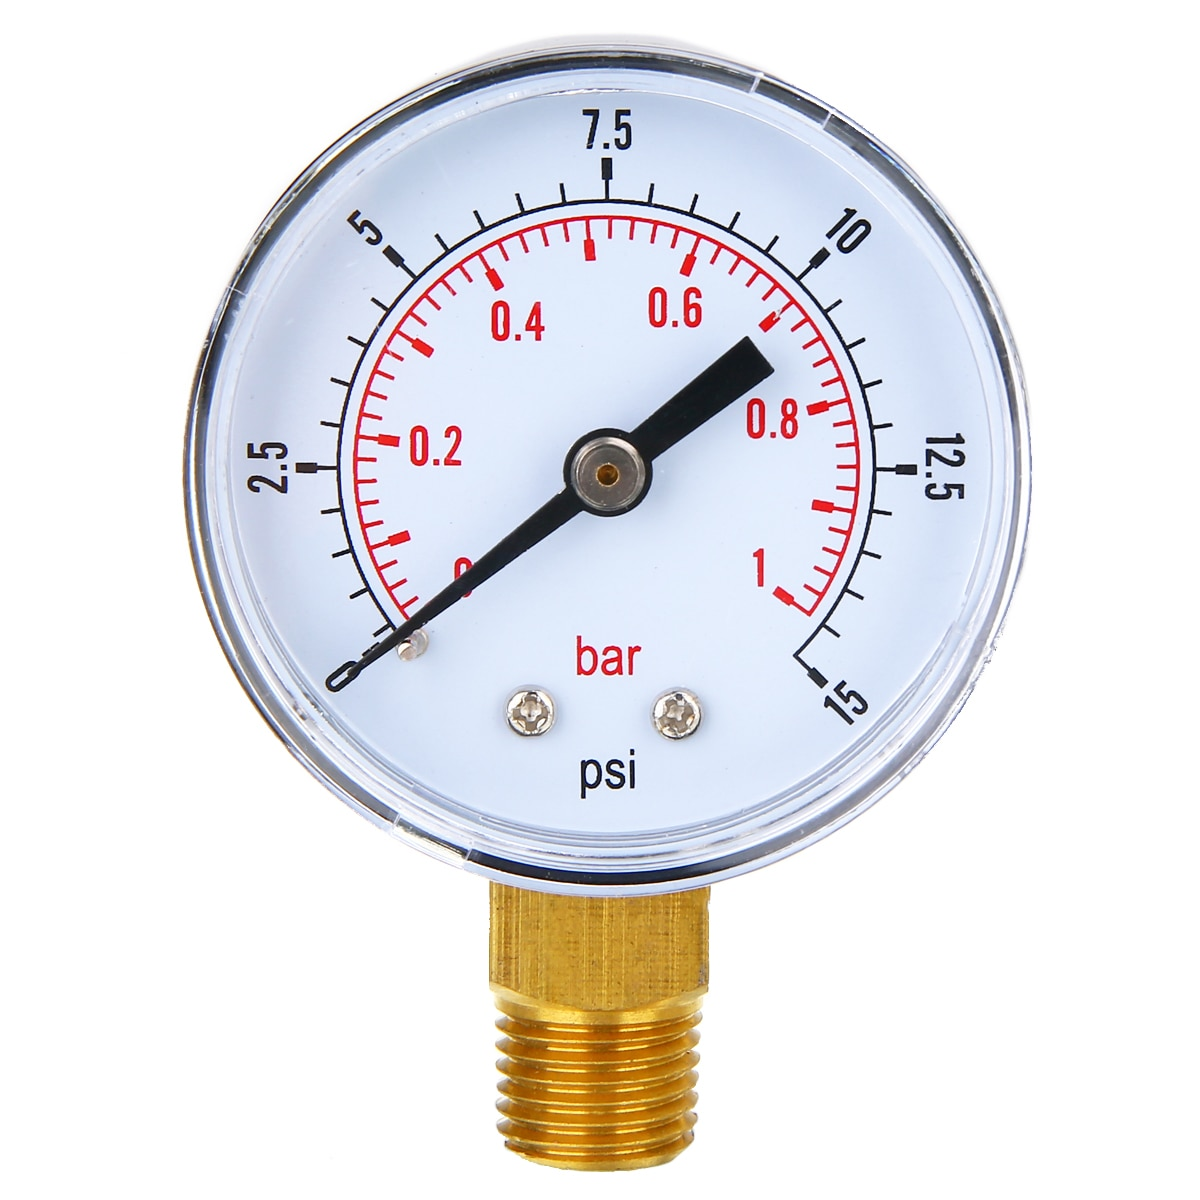 0 1 5 psi 0 1bar gauge 4 20ma sensor pressure 9v to 30v 24v dc supply male thread 1 4 npt 316l wetted parts low cost New Low Pressure Pressure Gauge 50mm Diameter 0-15 PSI 0-1 Bar 1/4 BSPT For Fuel Air Oil Gas Water 70*50*22mm